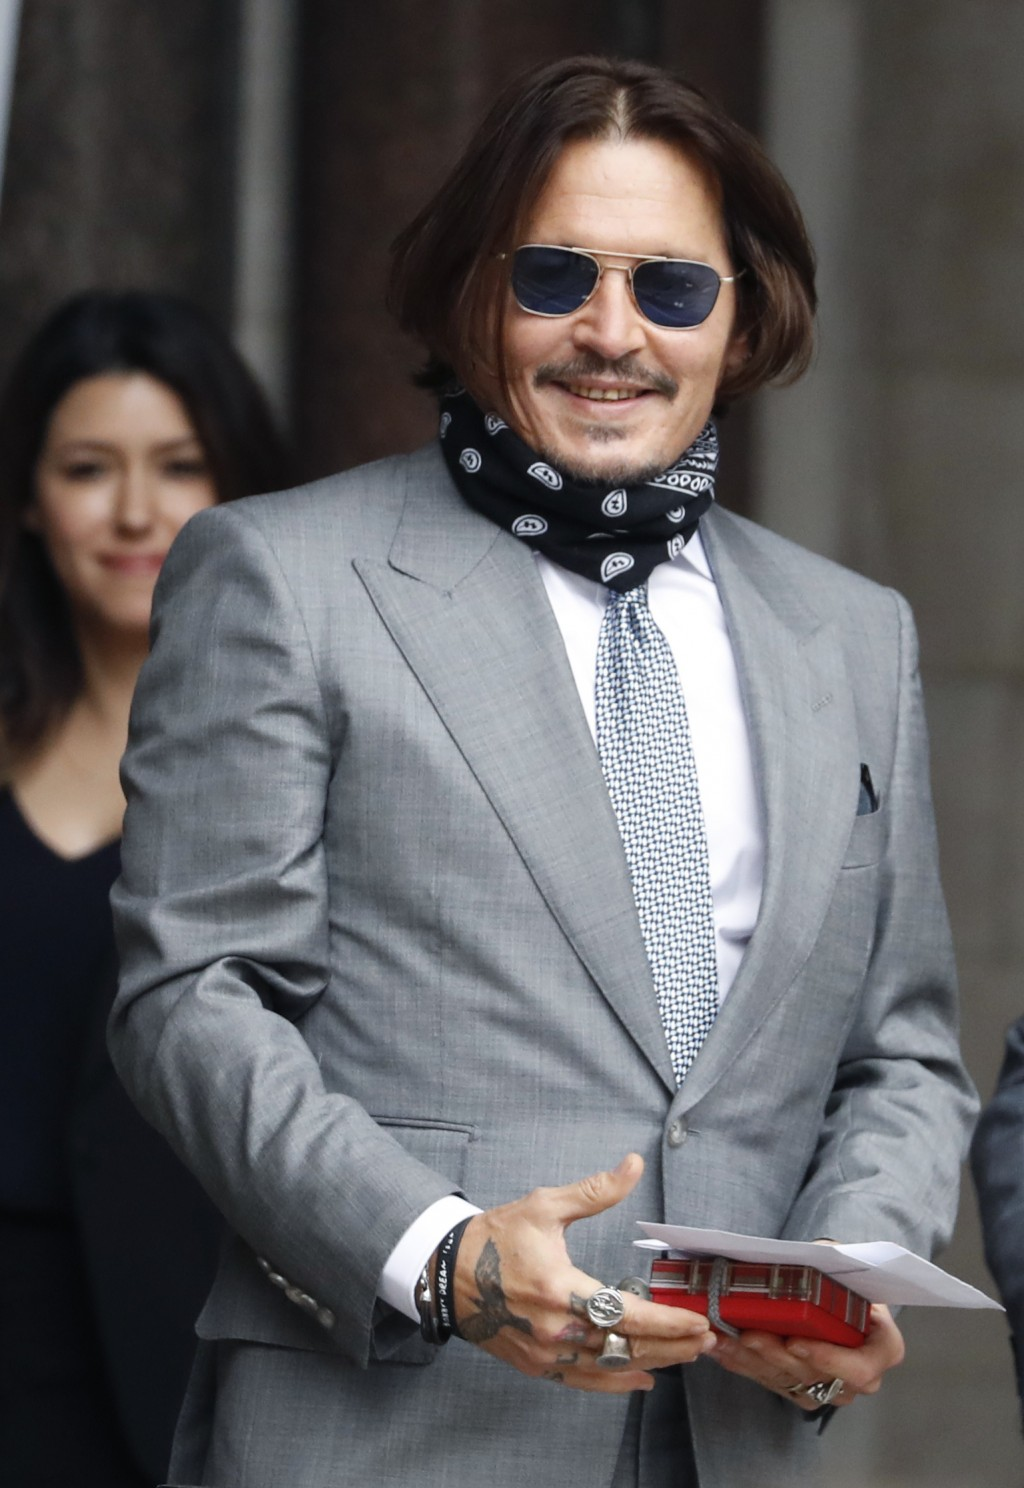 Actor Johnny Depp arrives at the High Court in London, Thursday, July 16, 2020. Depp is suing News Group Newspapers, publisher of The Sun, and the pap...